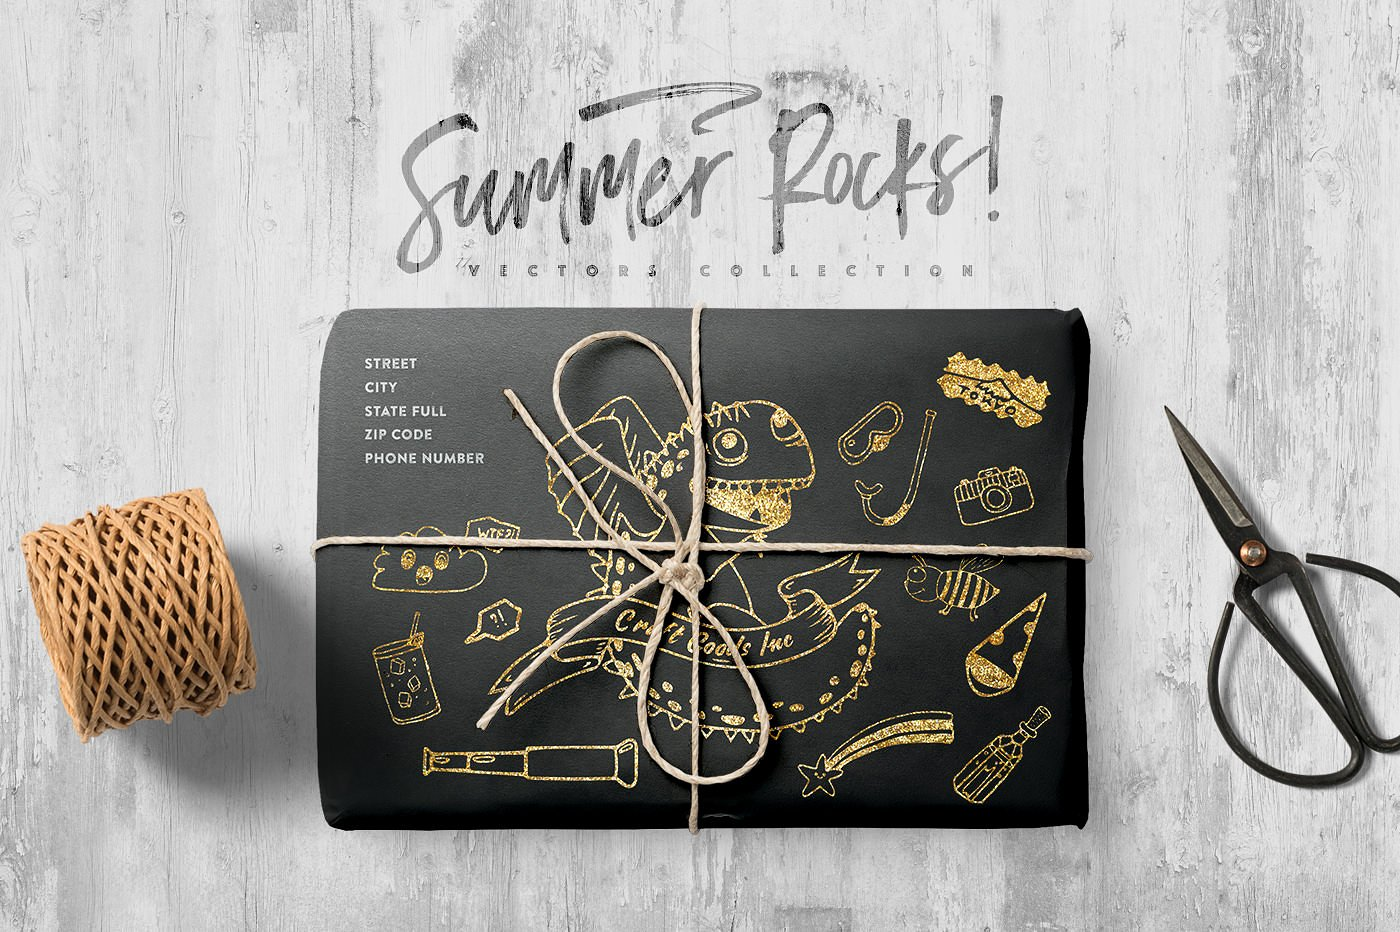 Summer Rocks! Vectors Collection example image 5